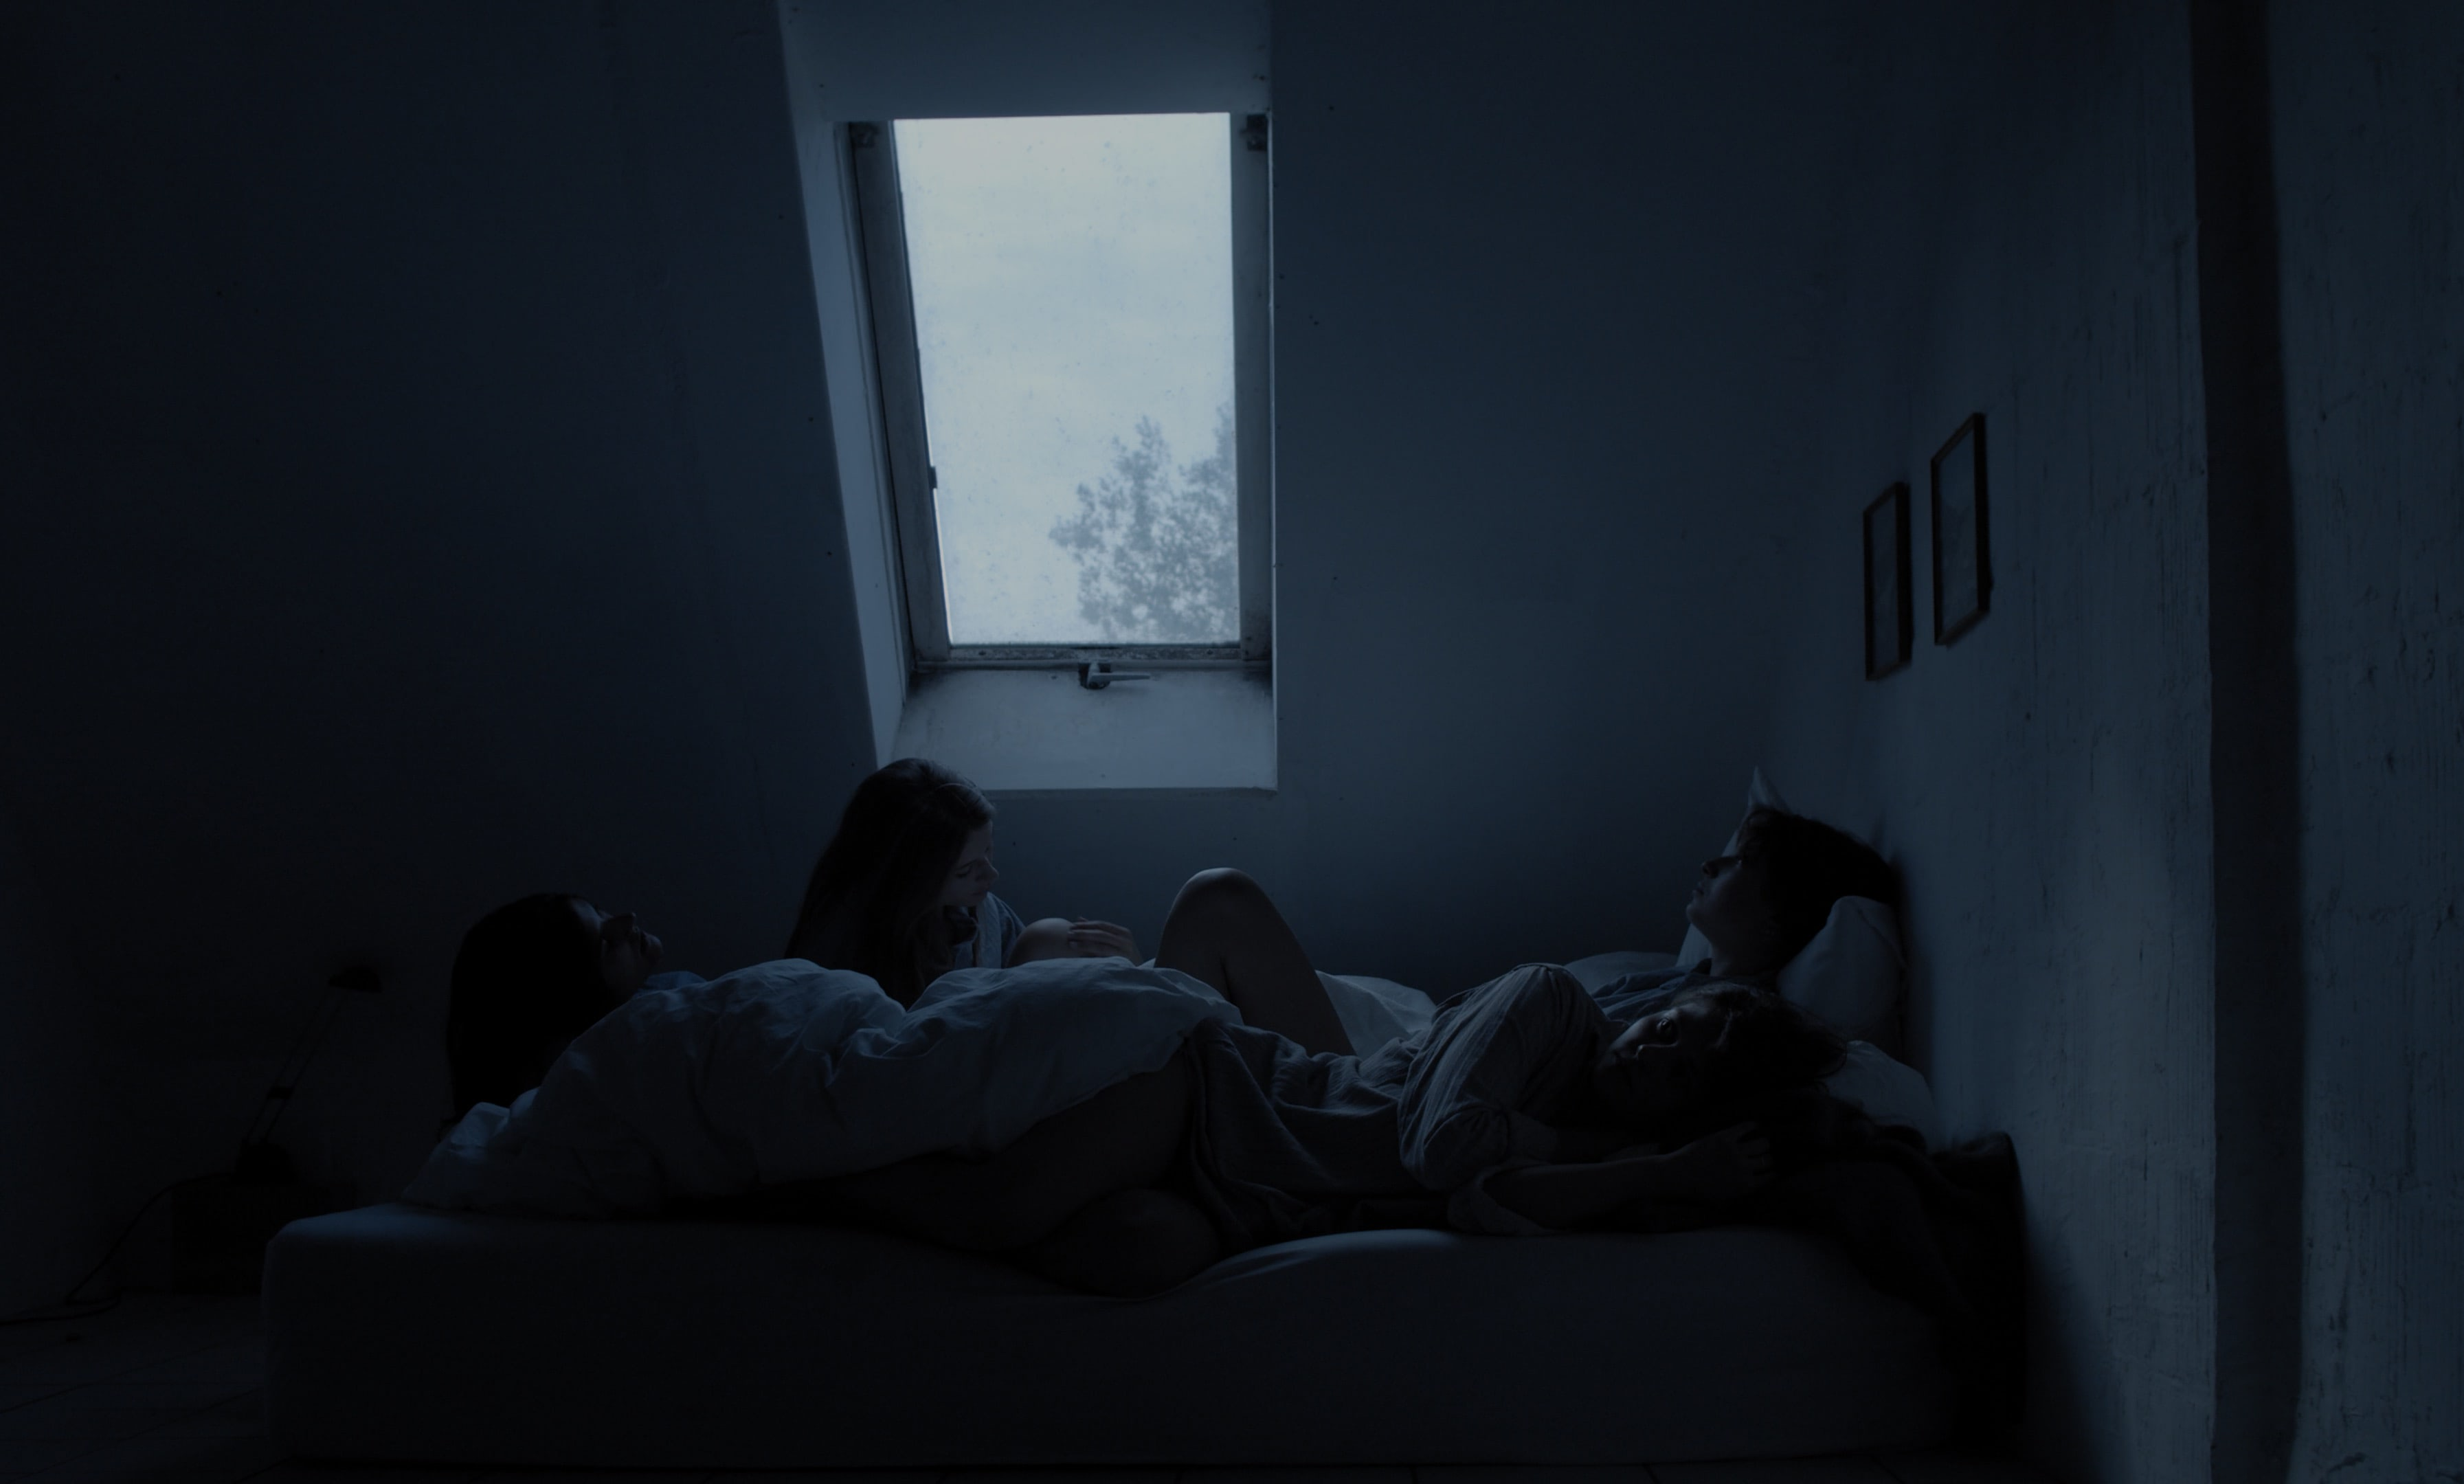 Four women lying in bed, waiting for something. Early morning light falls through the window.